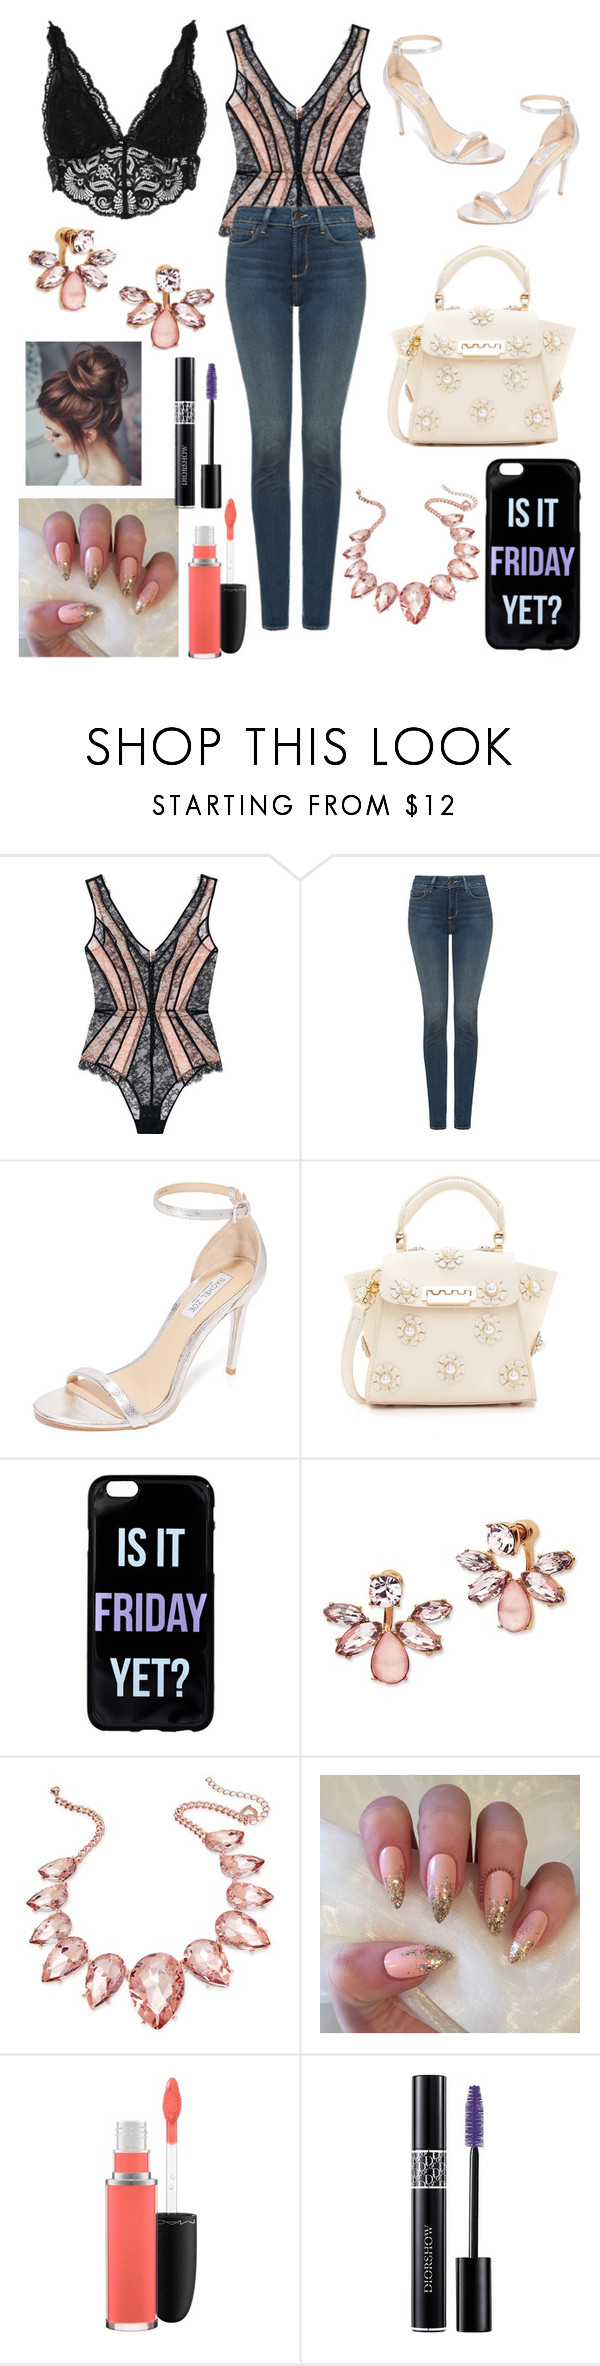 """Street Style #51"" by laughlikecrazy on Polyvore featuring Agent Provocateur, NYDJ, Rachel Zoe, ZAC Zac Posen, Marchesa, Thalia Sodi, MAC Cosmetics, Christian Dior and River Island"